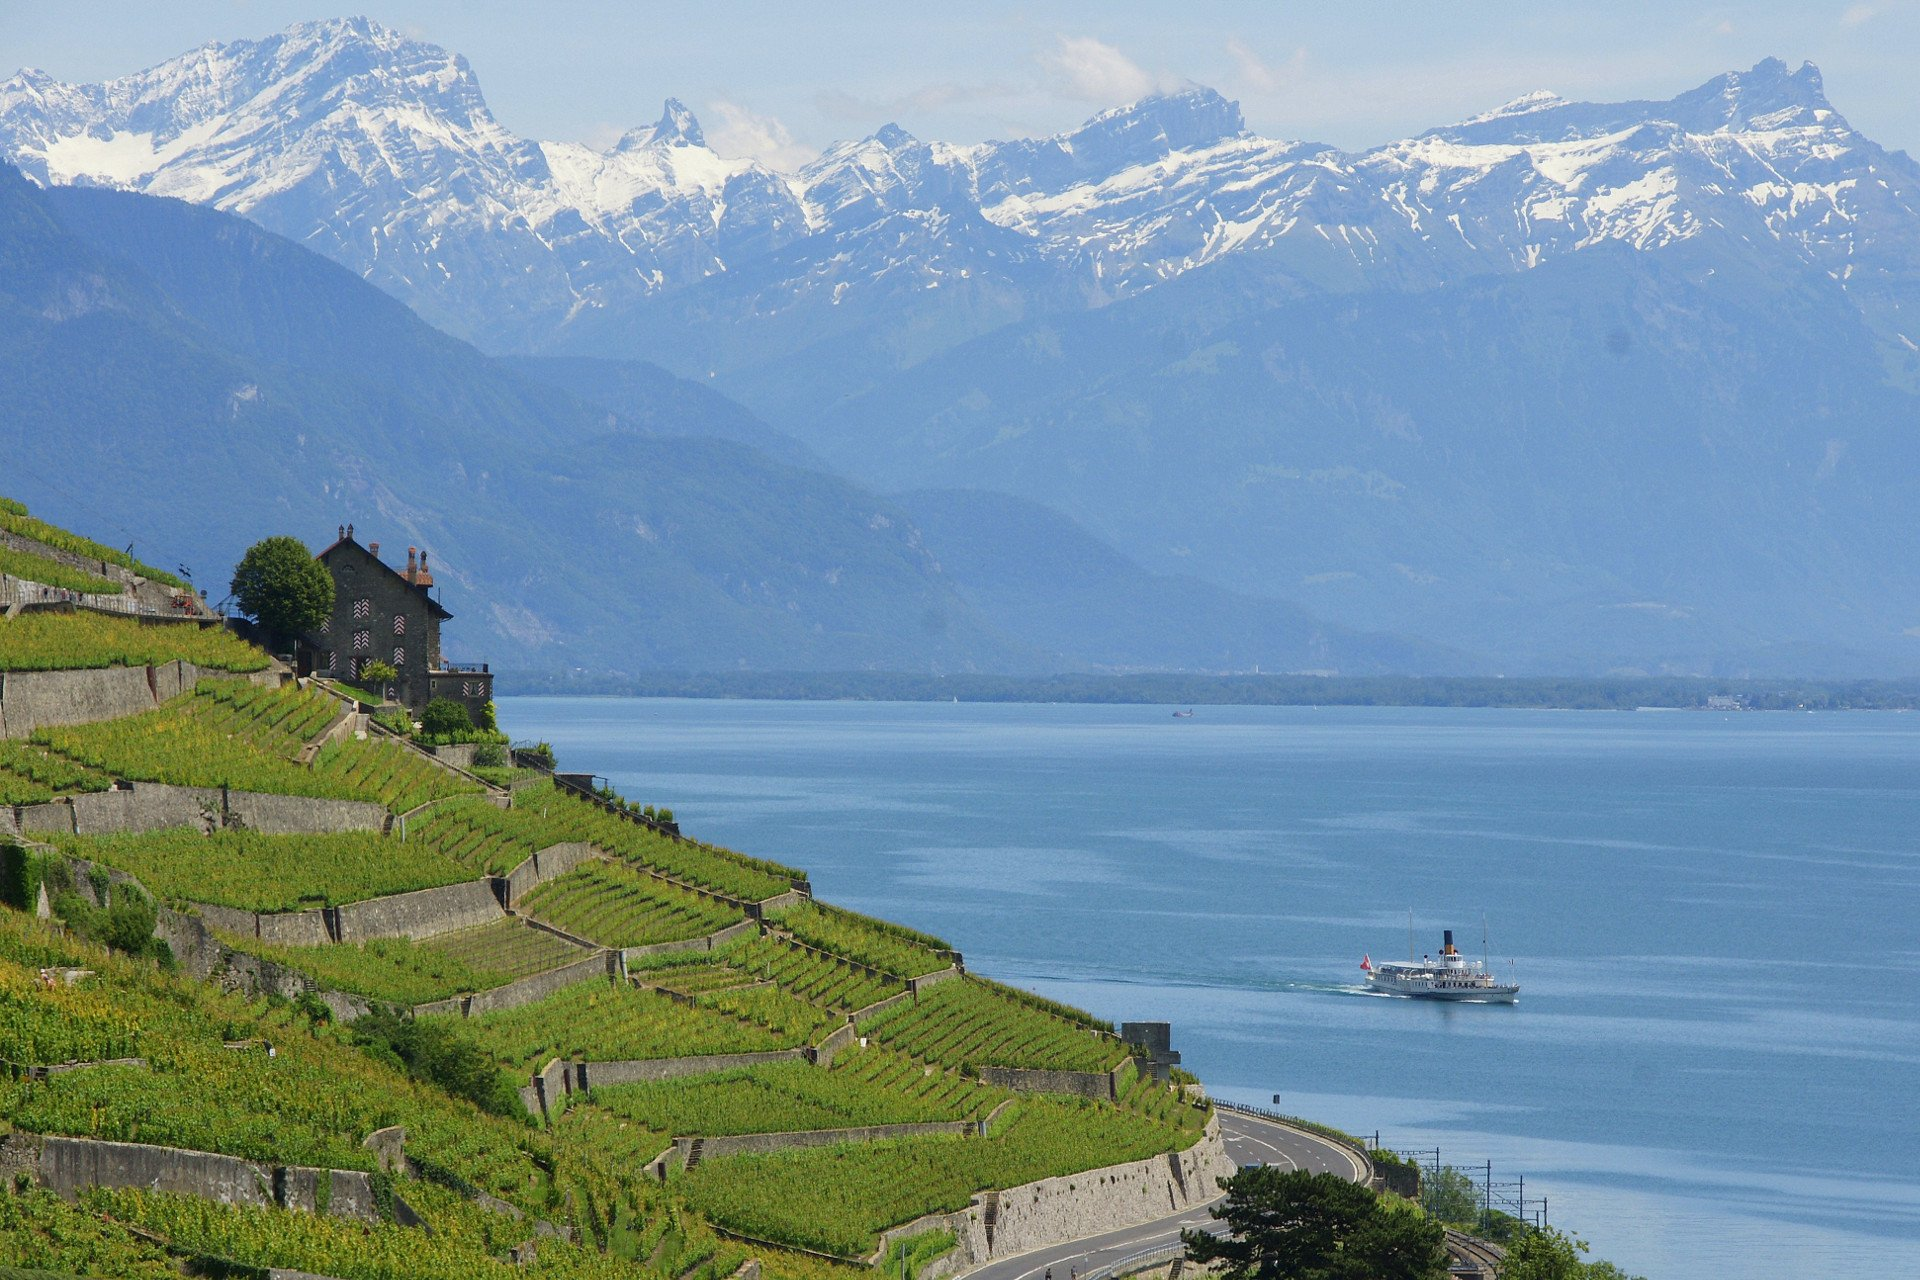 private tour-boat-nature-Leman Lake-Switzerland